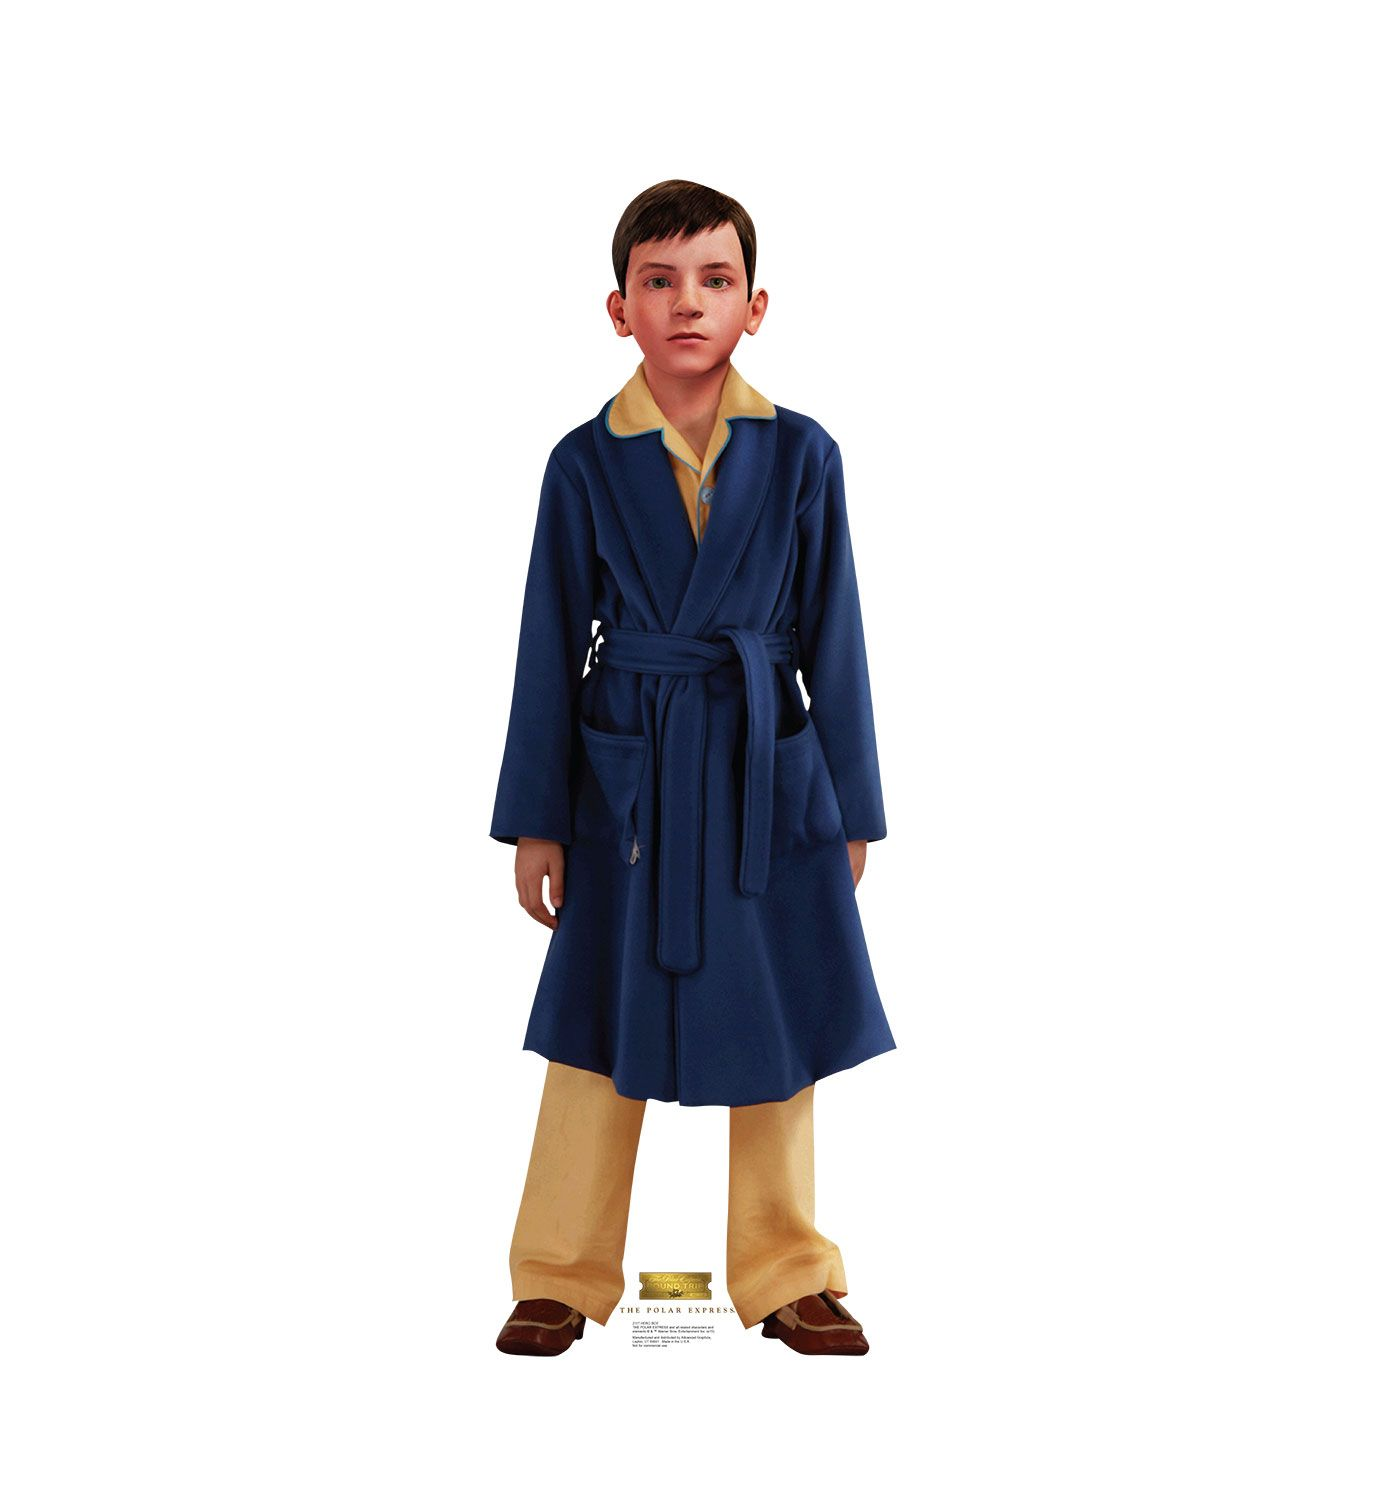 i used this character from the polar express and i would say he s